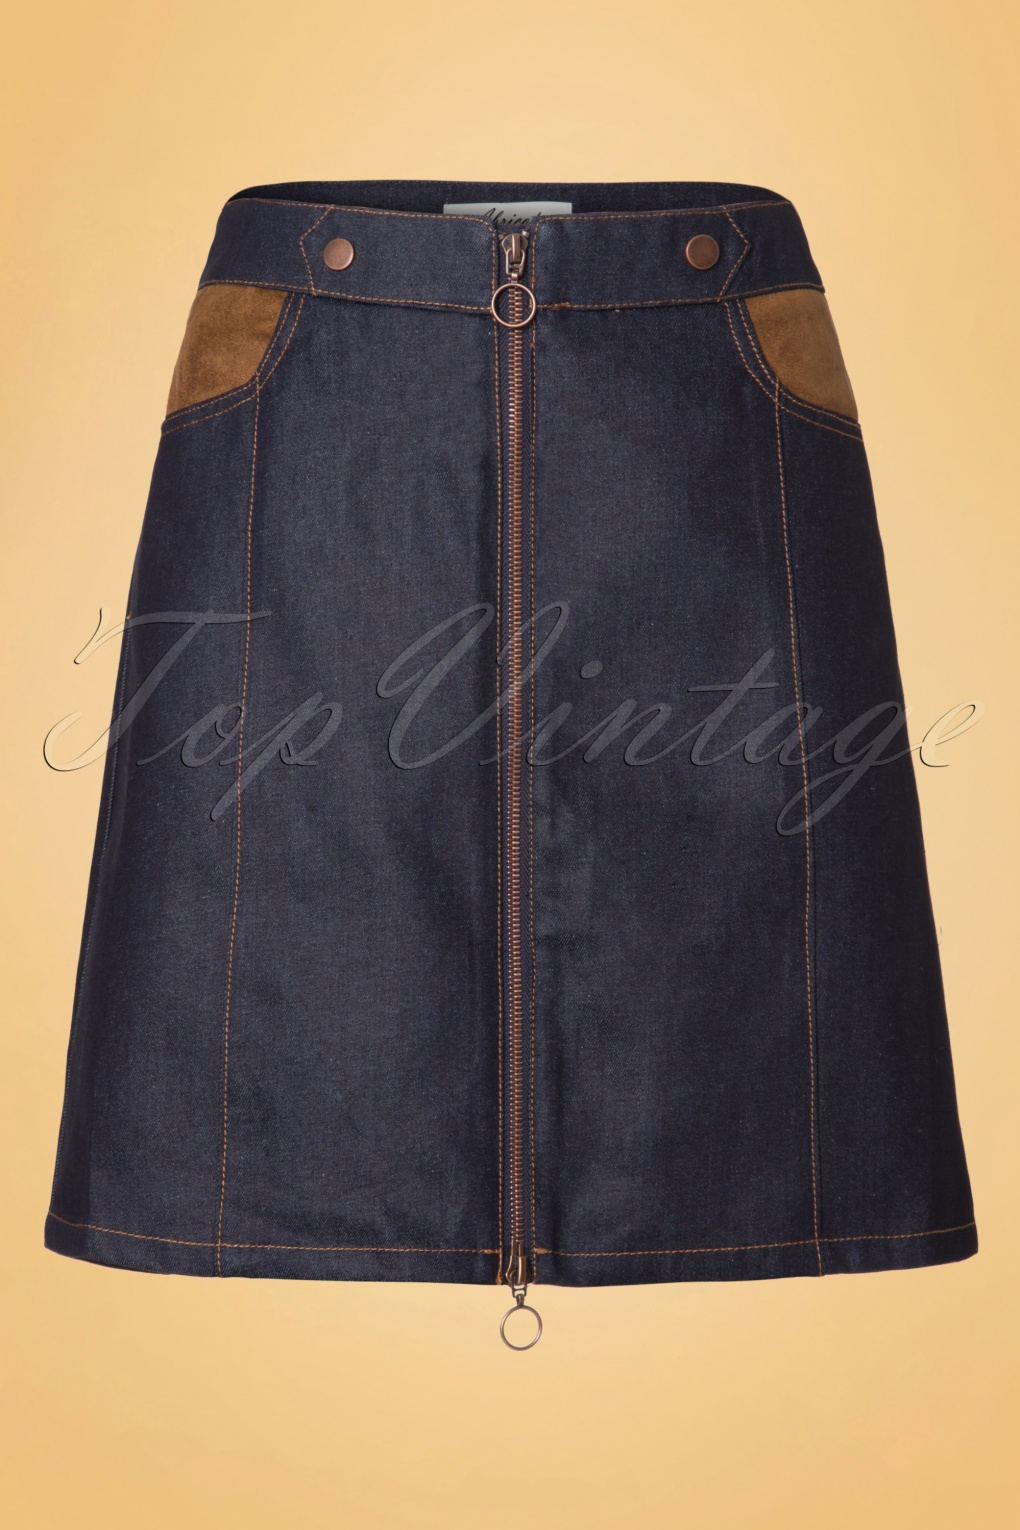 70s robin cleveland denim skirt in blue